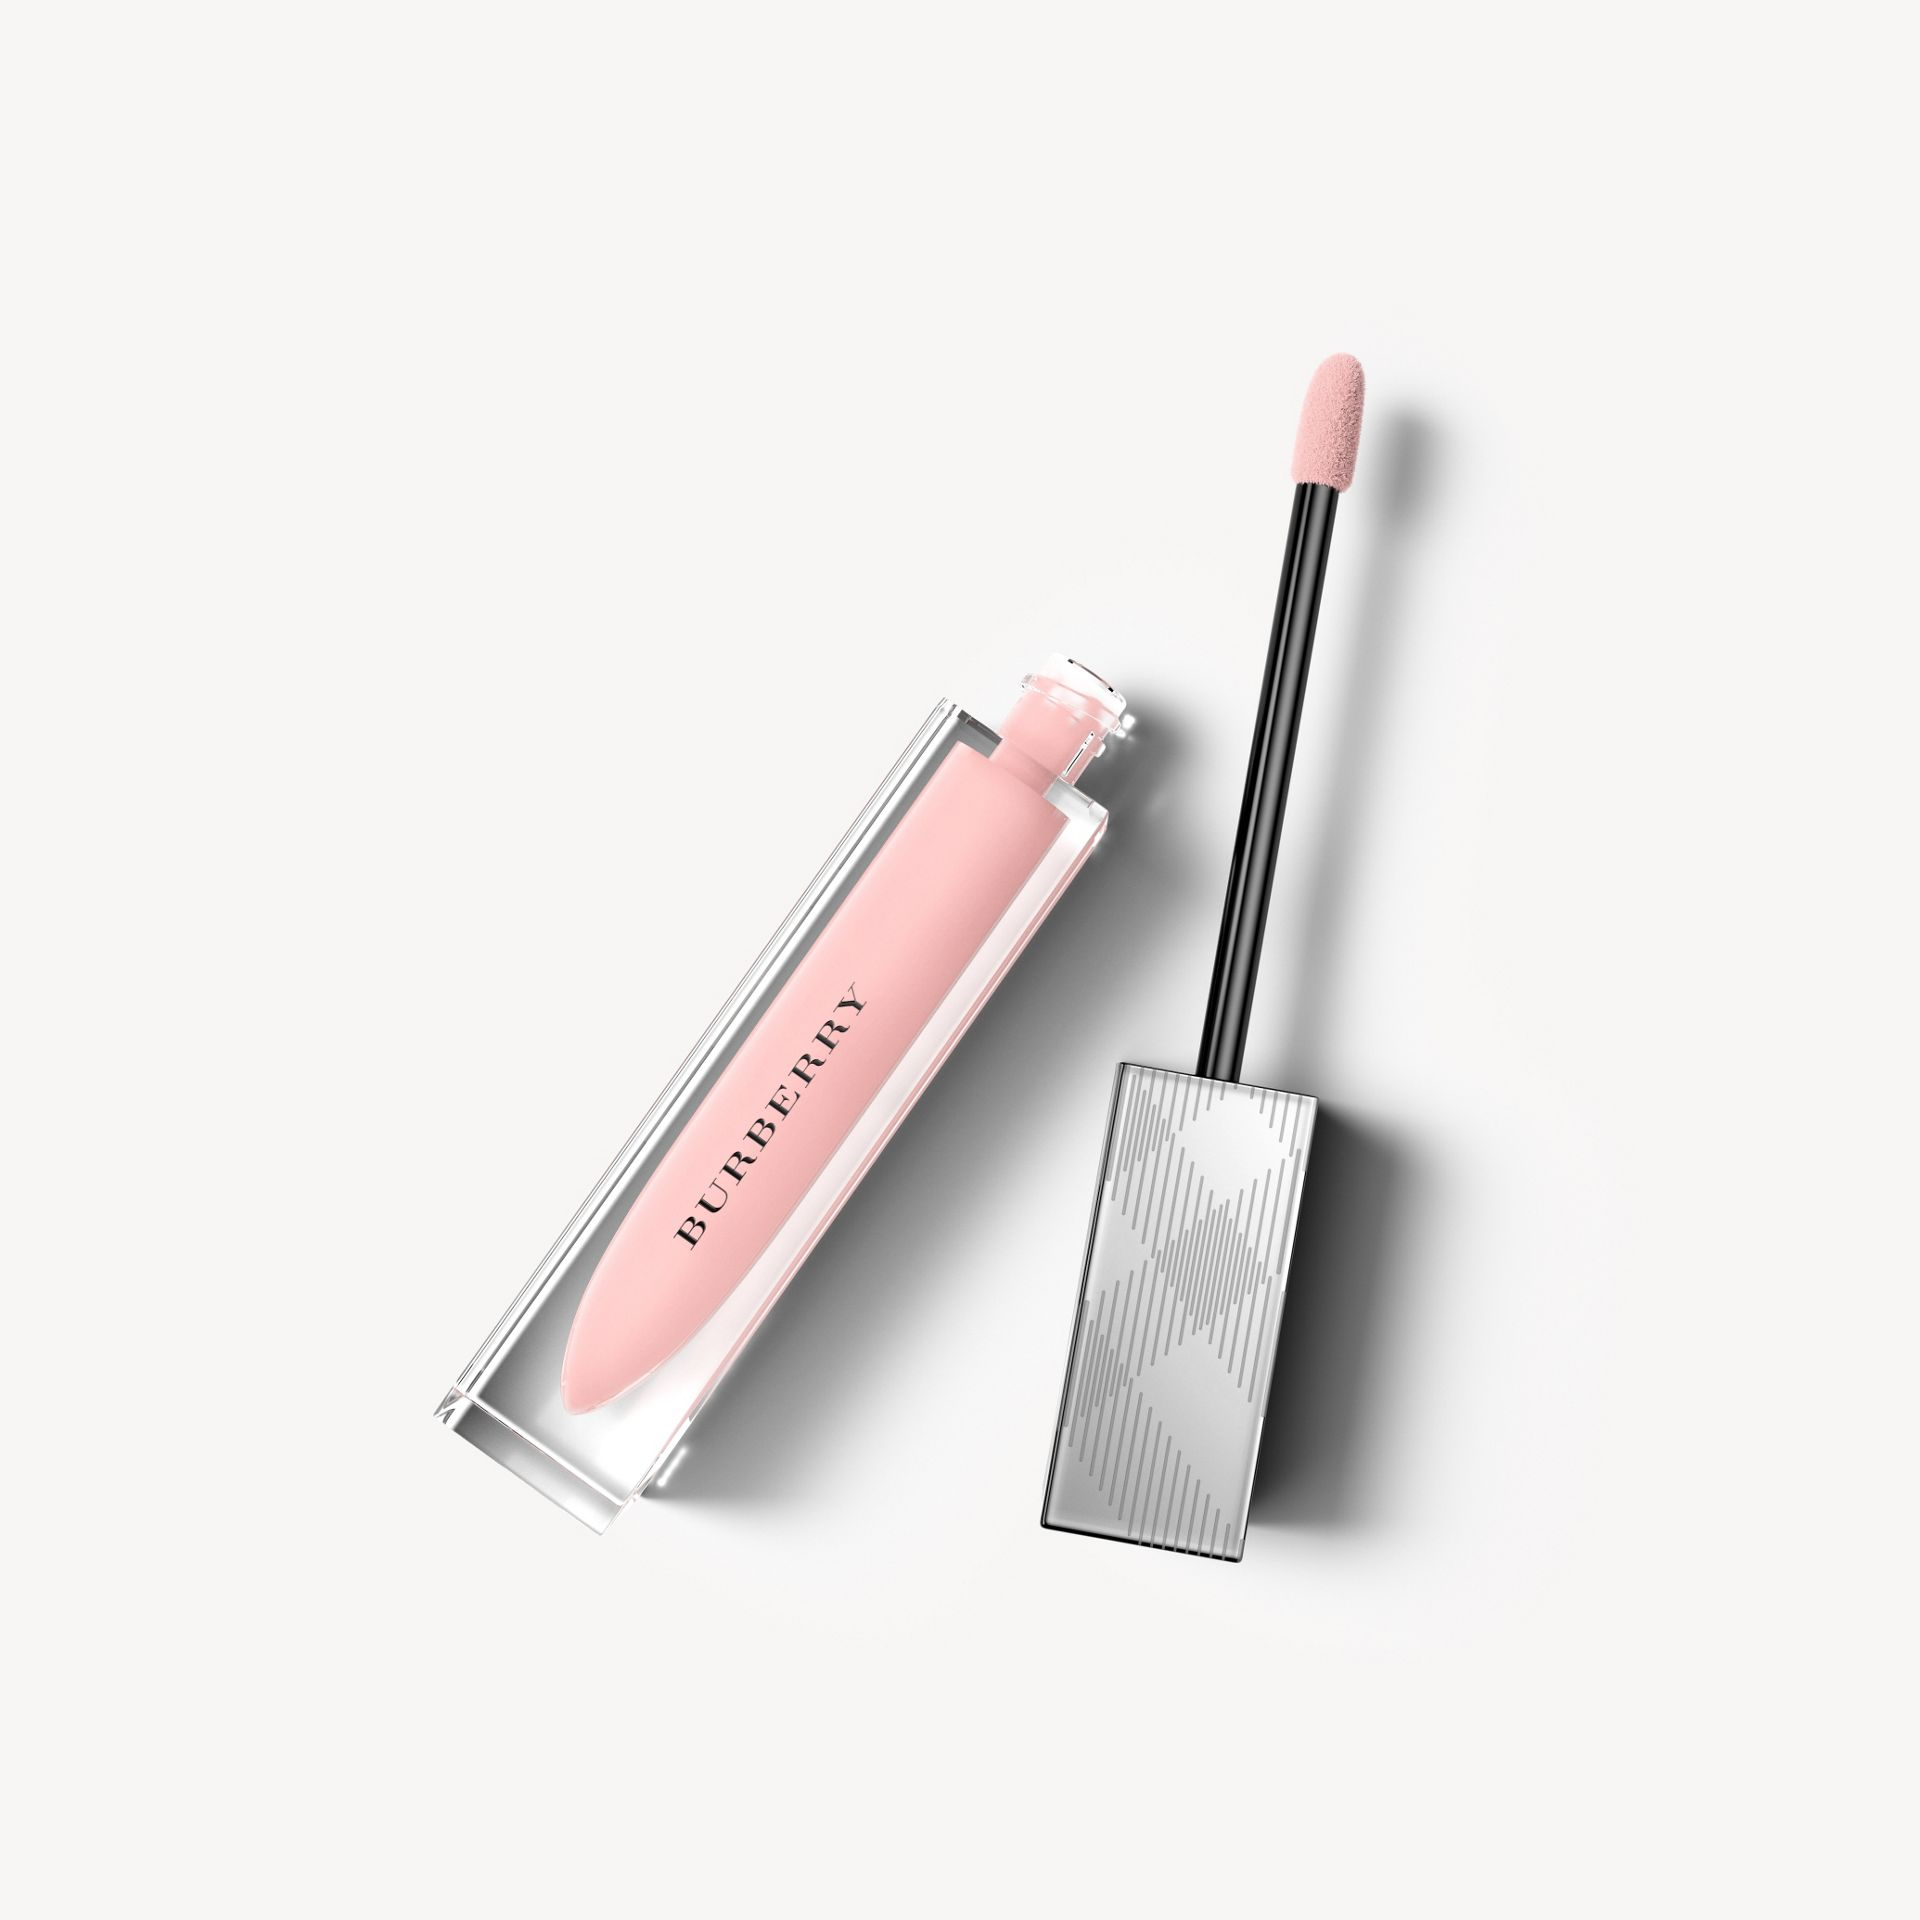 Блеск для губ Burberry Kisses Gloss, Coral Rose № 65 - изображение 1